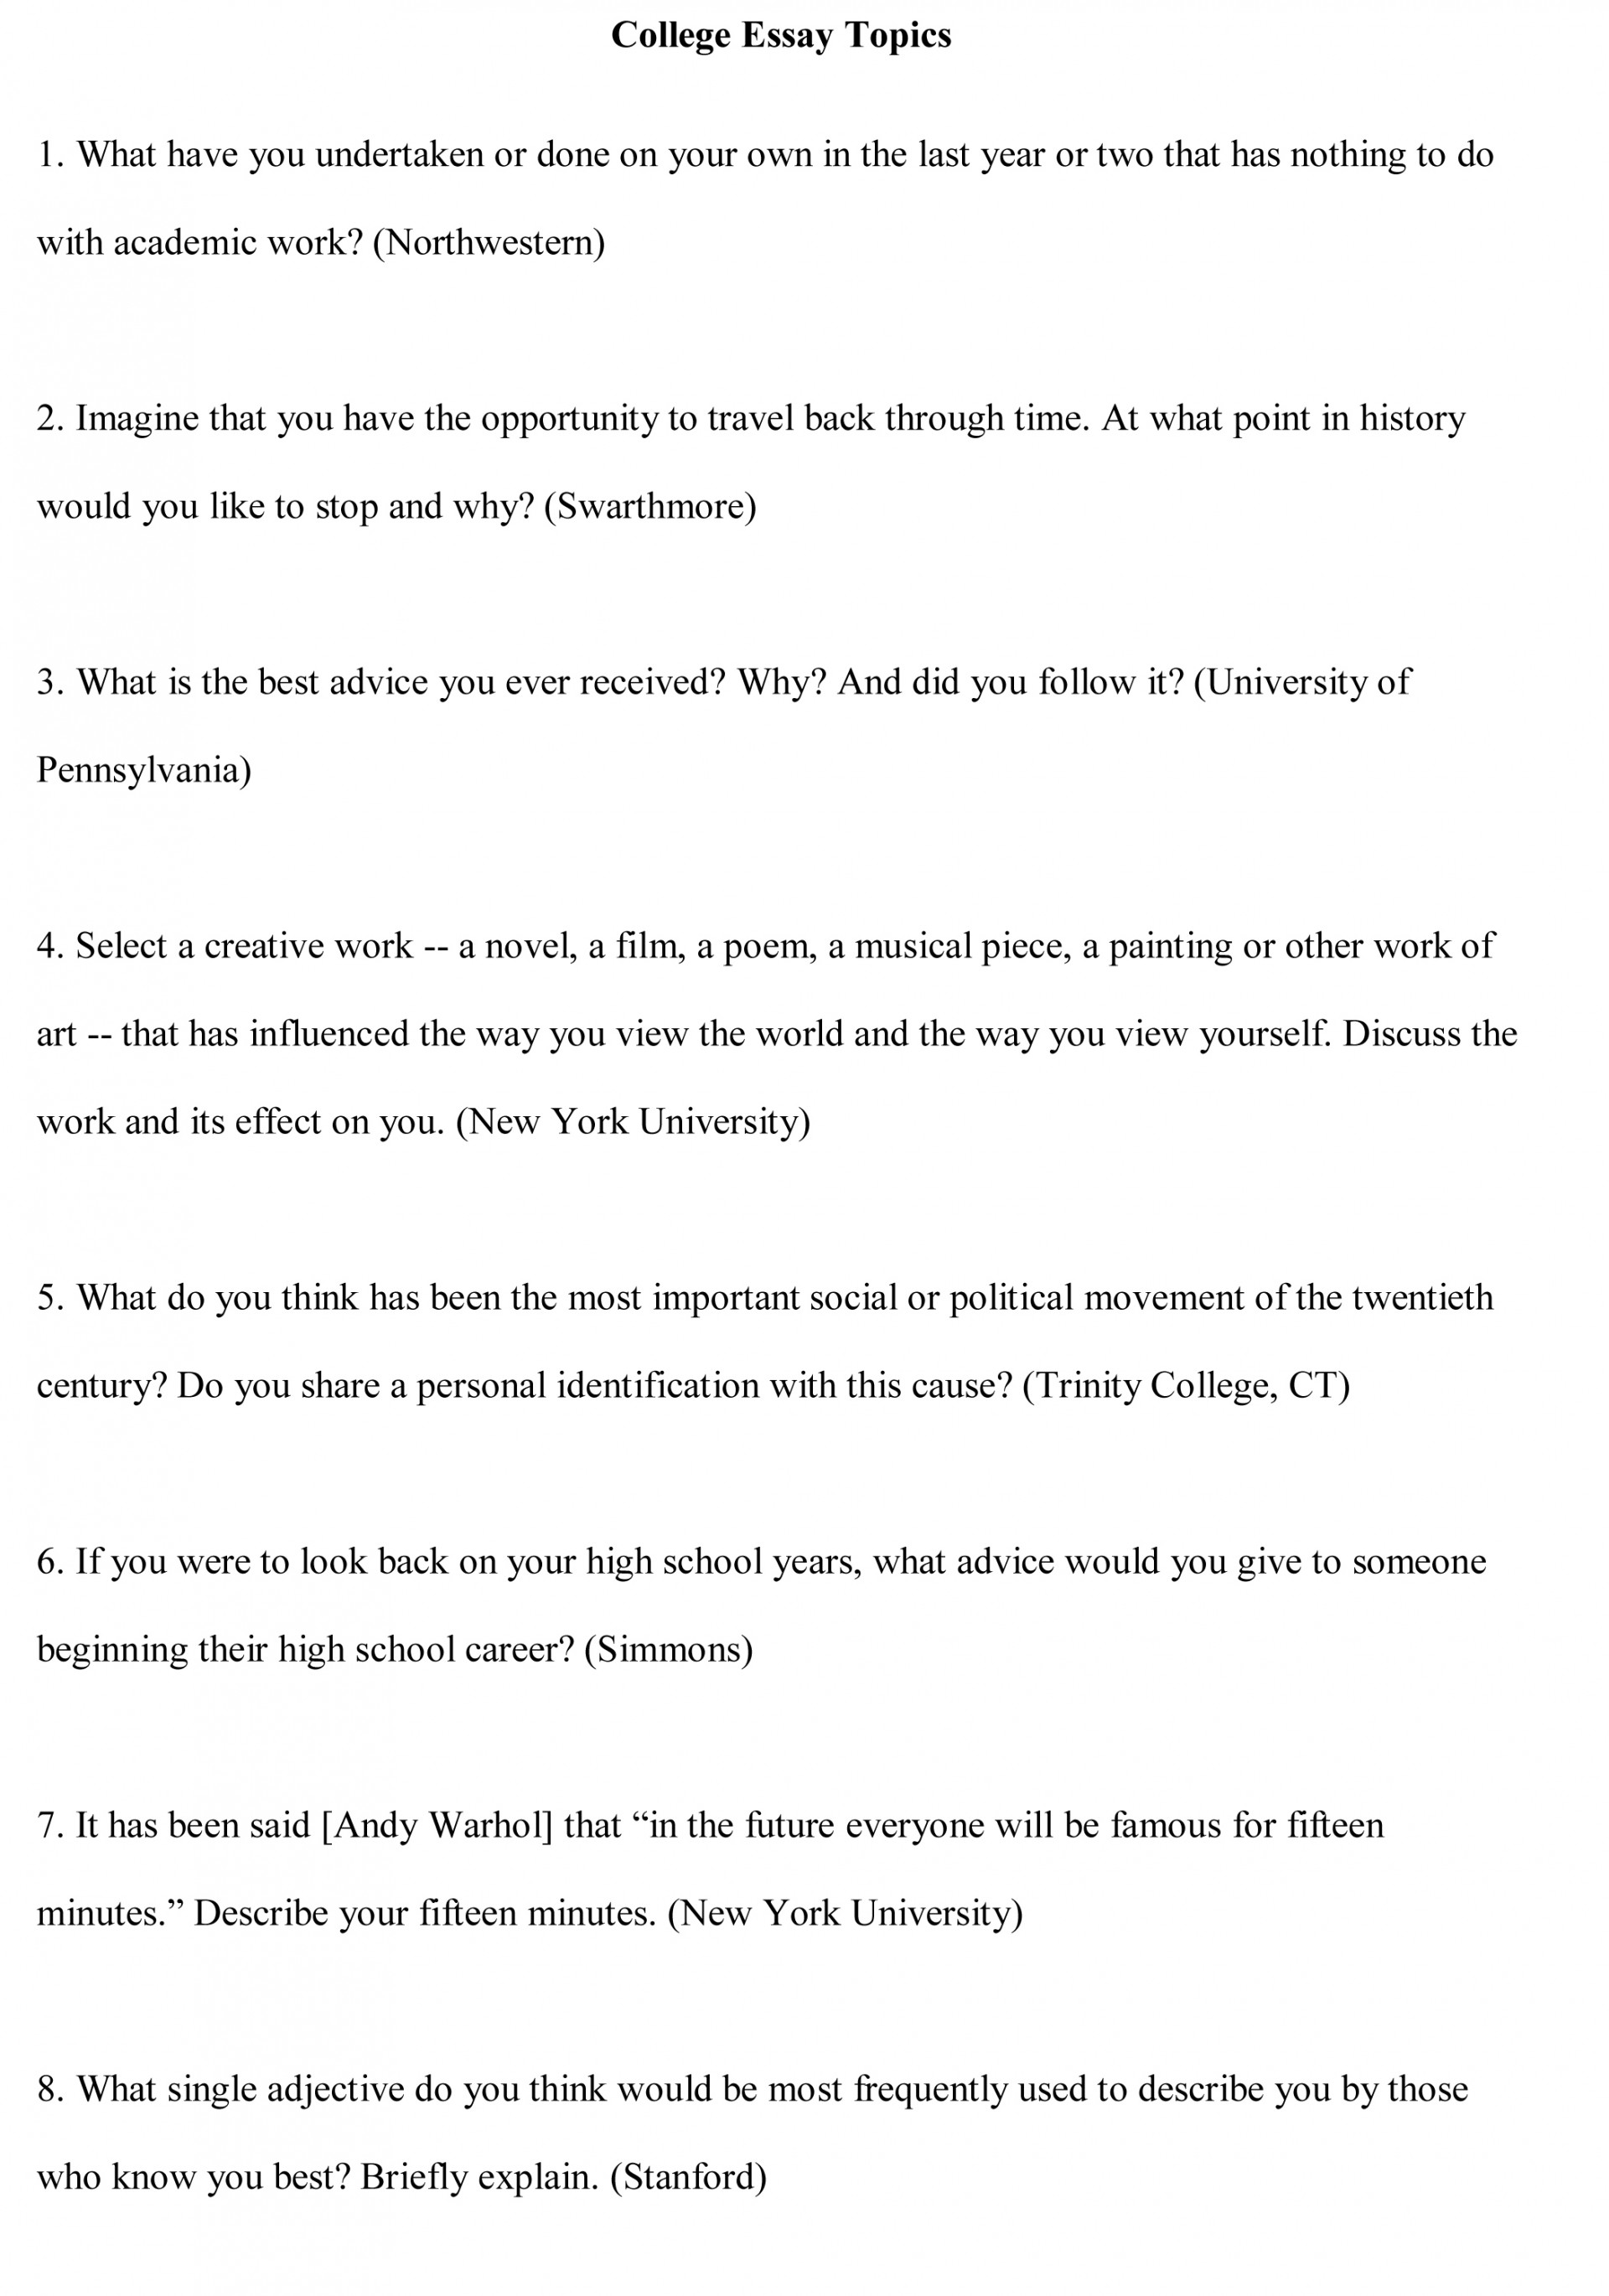 009 Research Paper Psychology Topics List College Essay Free Awesome Topic Ideas 1920